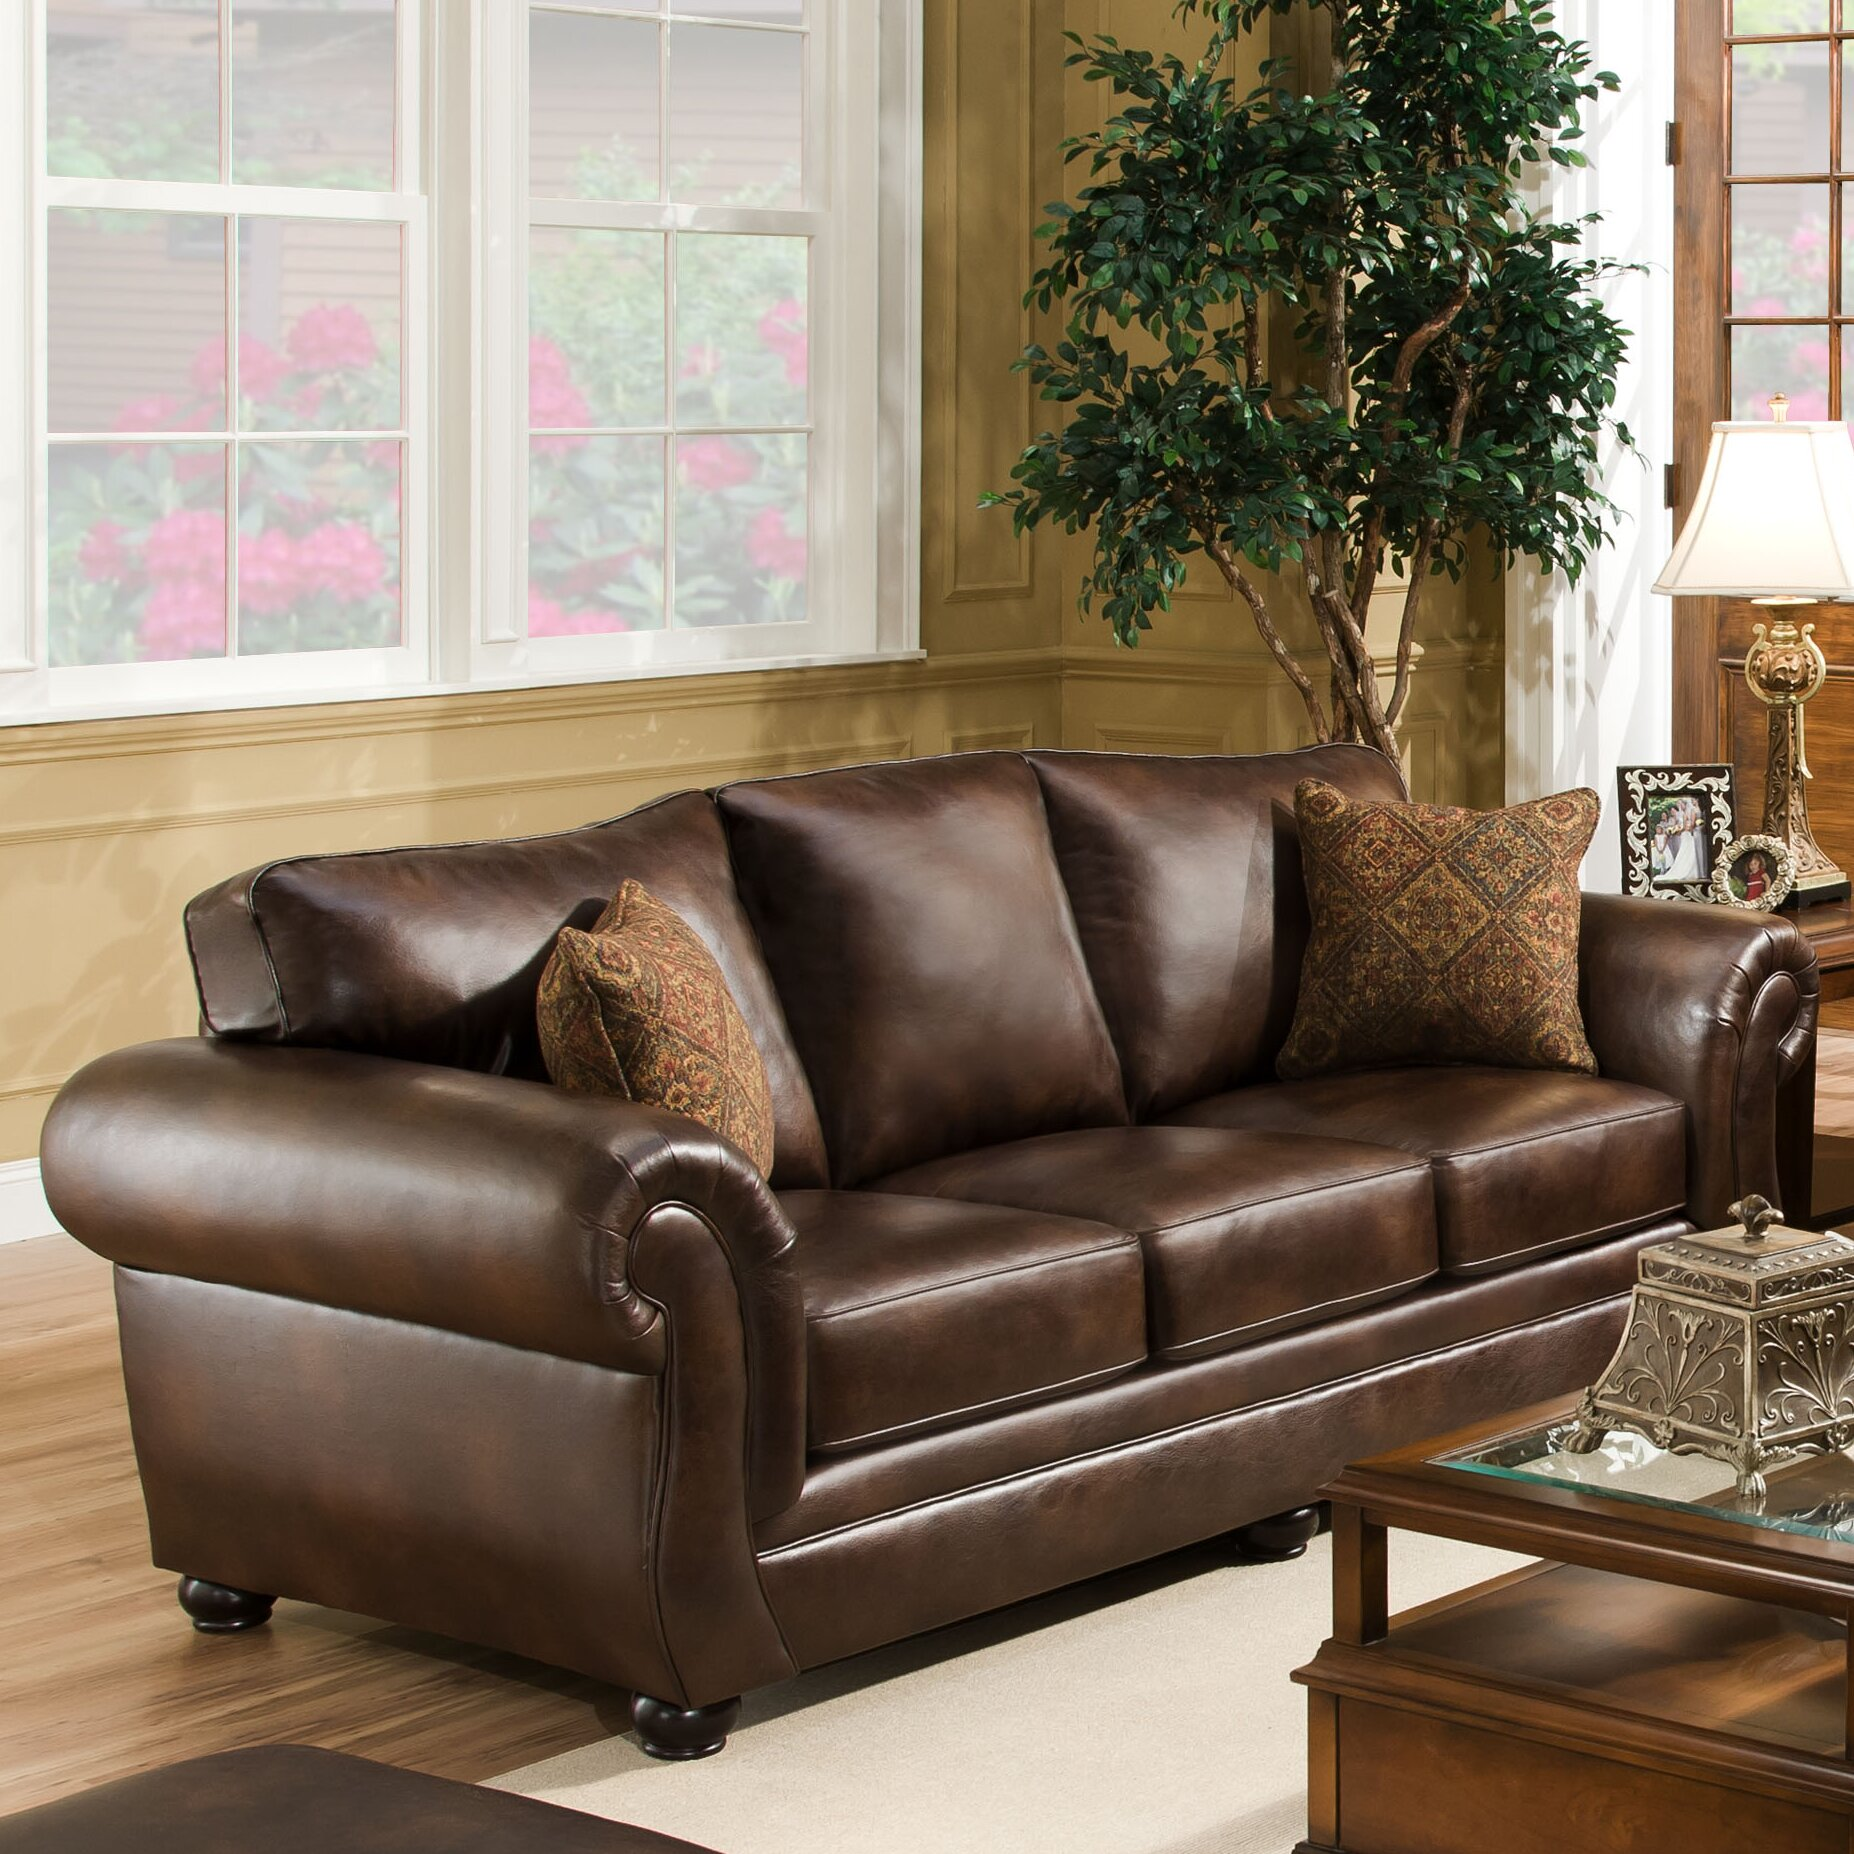 Simmons upholstery miracle living room collection for Simmons living room furniture